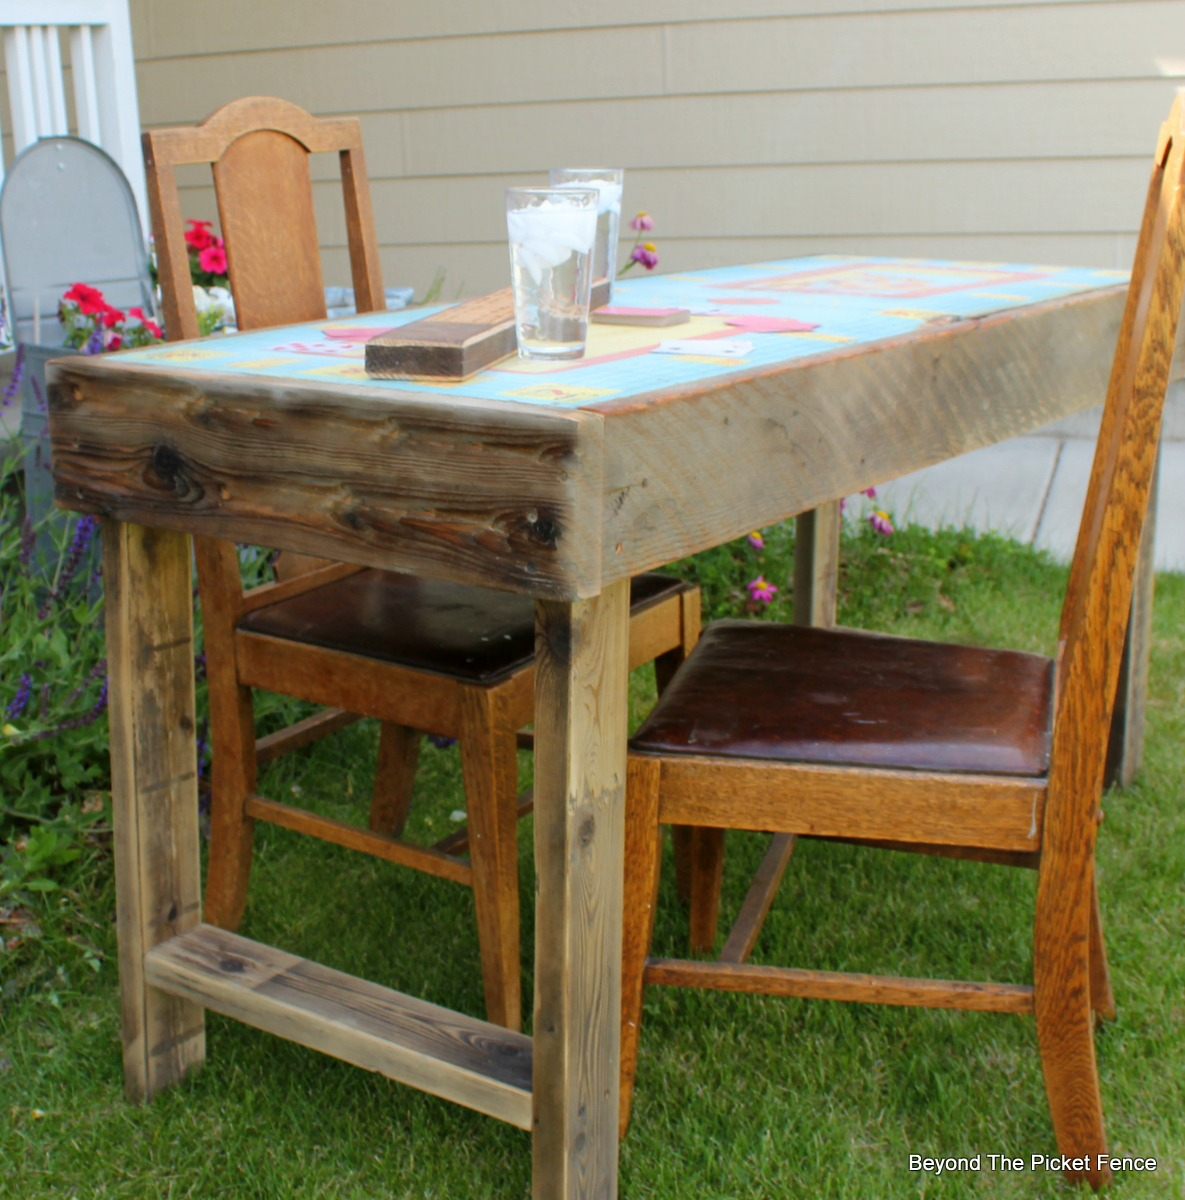 Metal, Rusty, Game Table, Vintage, Reclaimed Wood, Beyond The Picket Fence